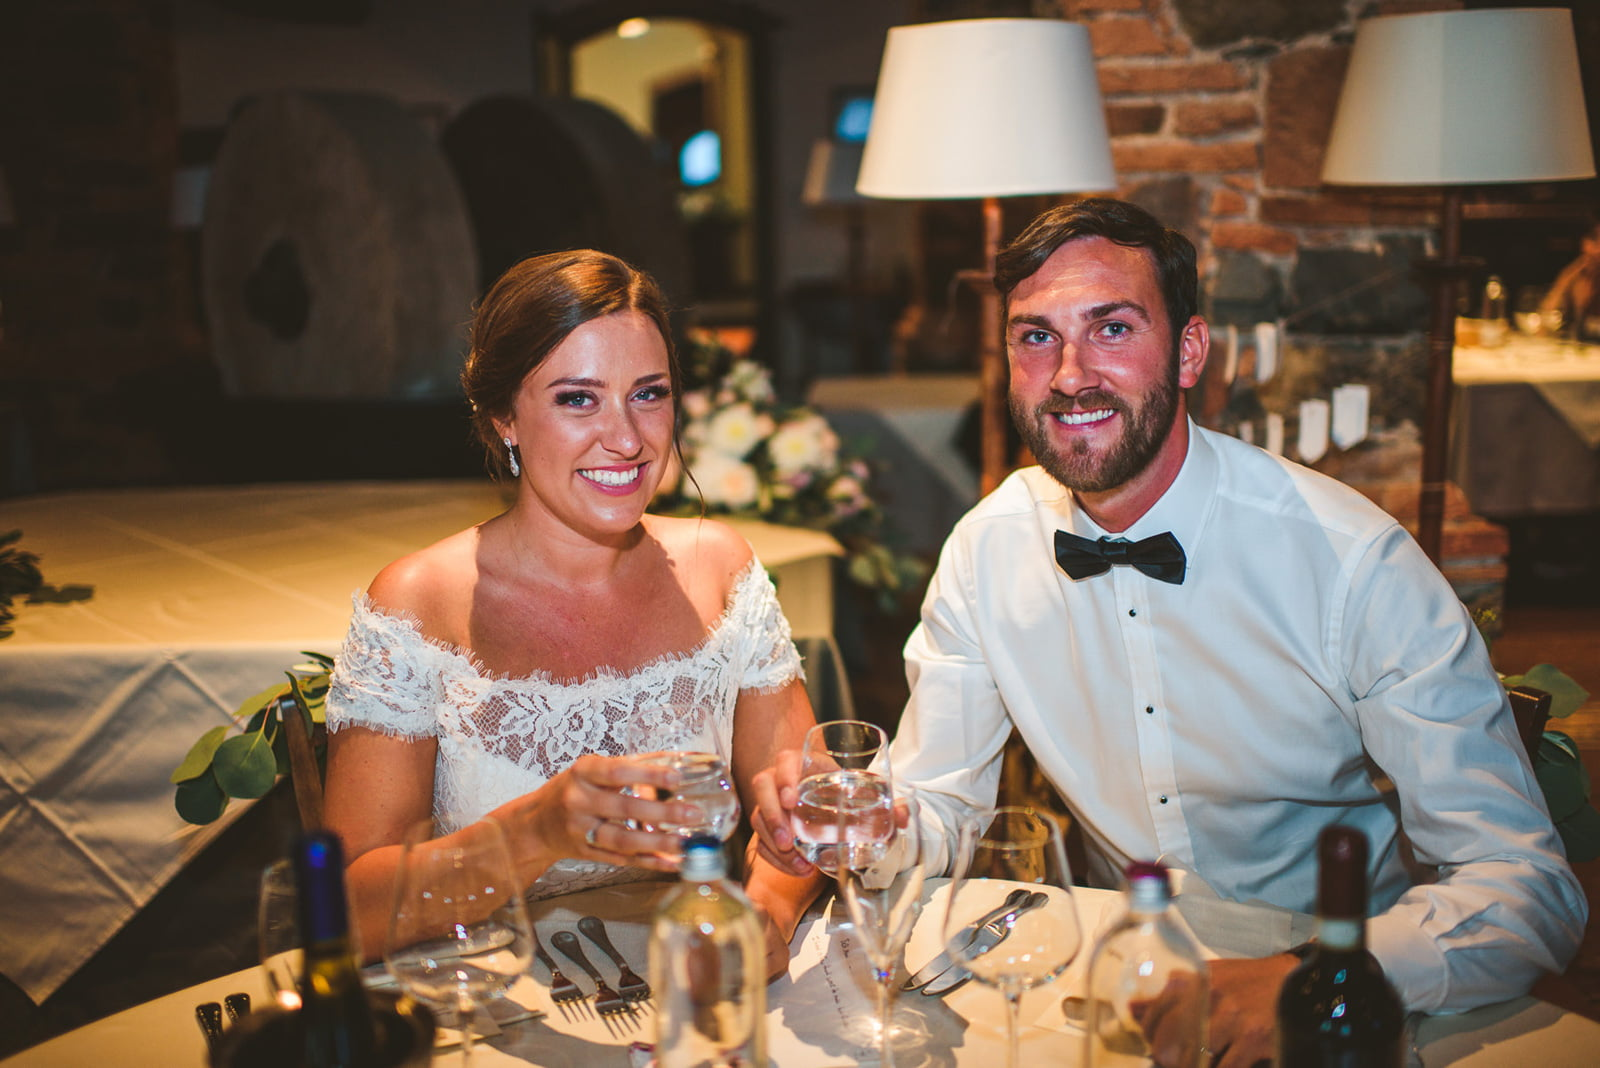 , F+P Wedding at Montelucci Country Resort by Federico Pannacci, Federico Pannacci